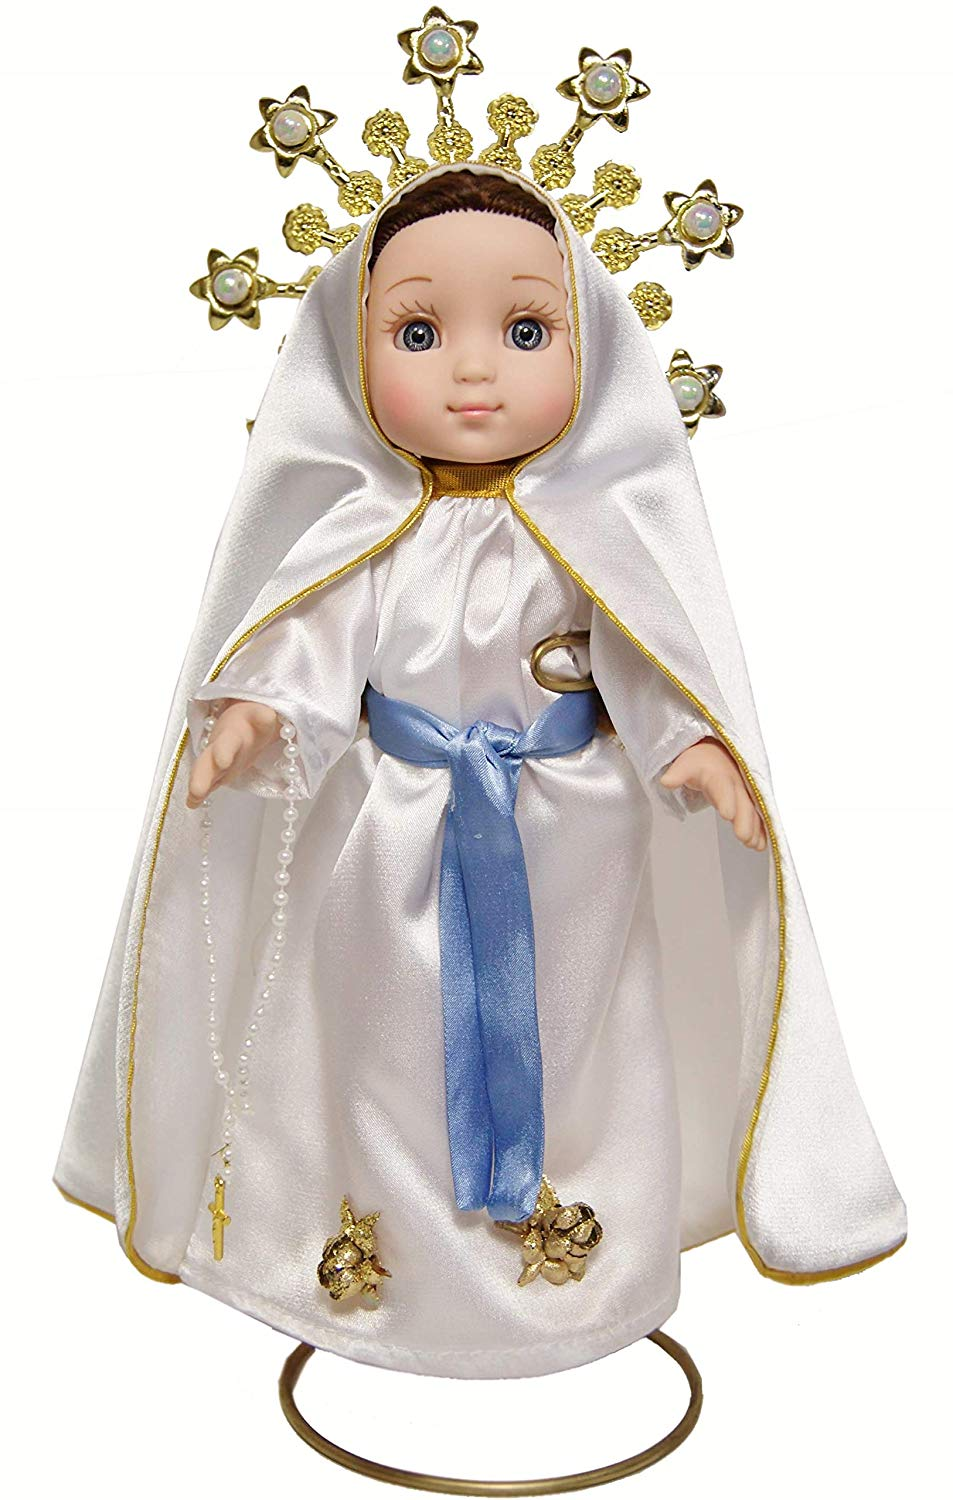 MARIA CONTIGO / Our Lady of Lourdes 10'' Doll with Rosary / Virgin Mary Mexican Doll, by Maria Contigo Ostler Collection